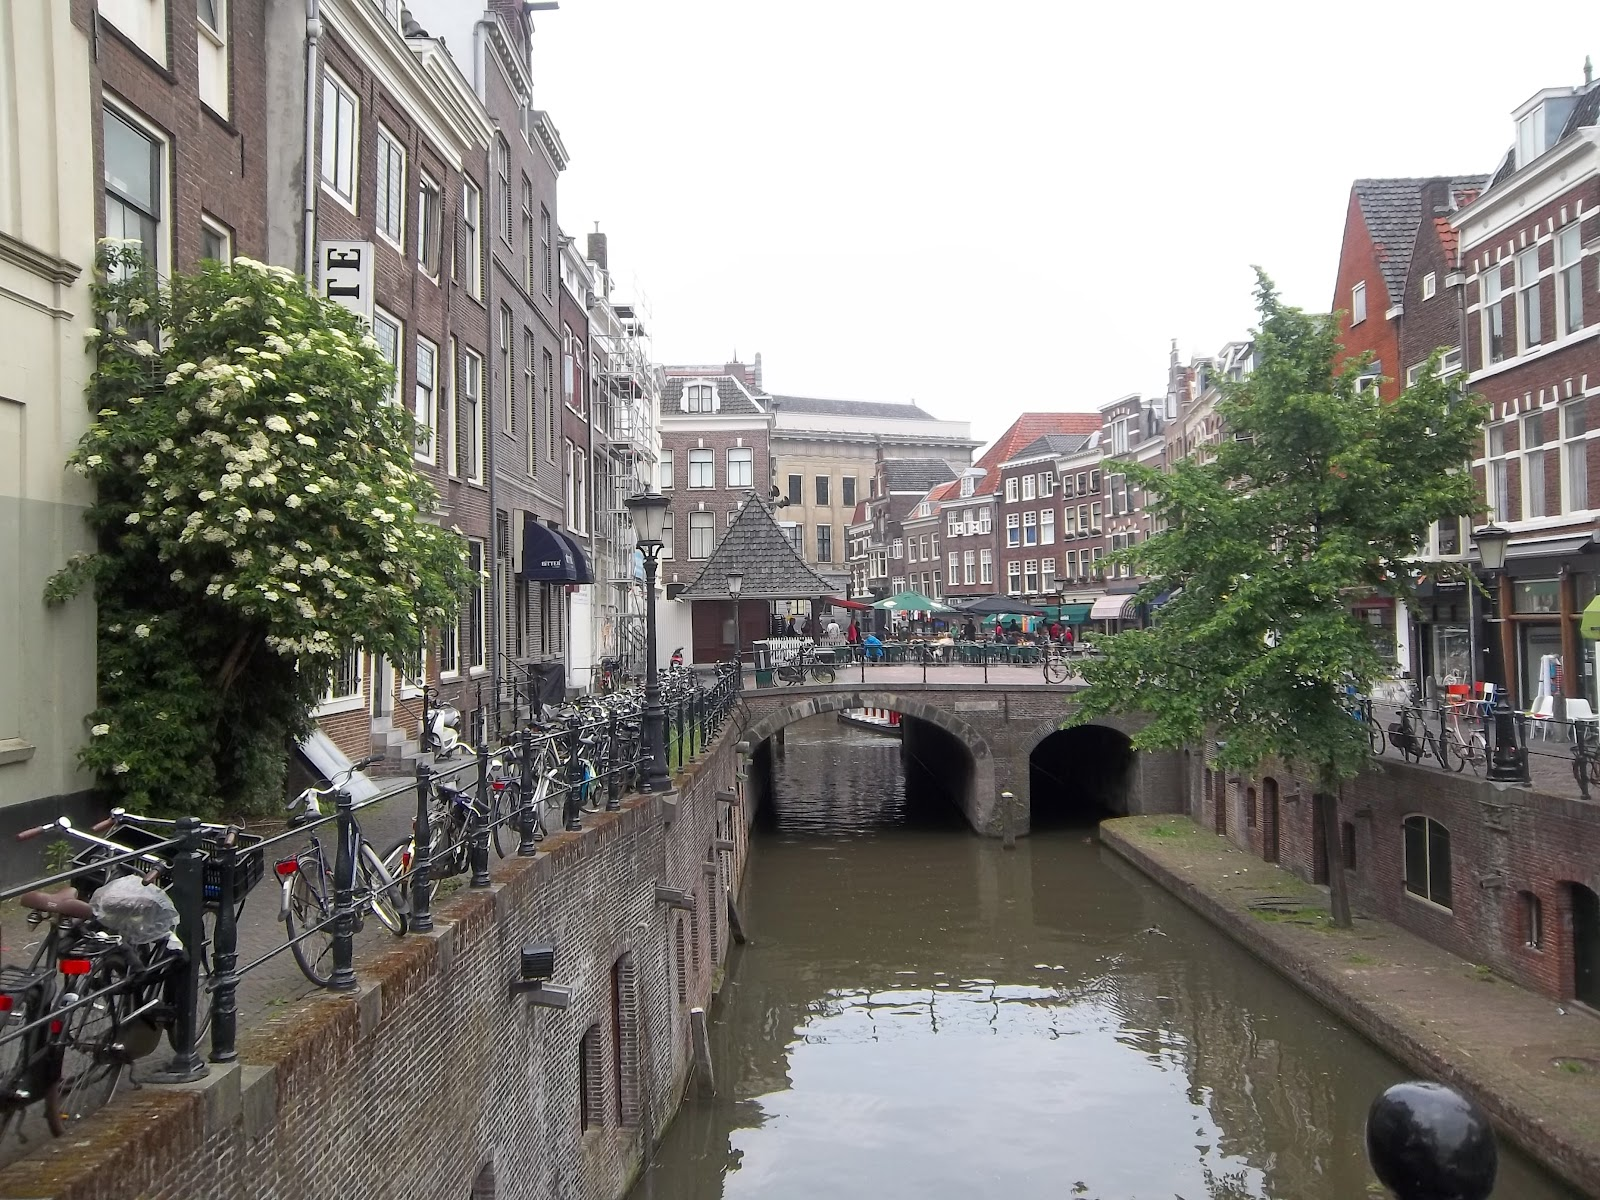 Utrecht Netherlands  City pictures : Utrecht, Netherlands